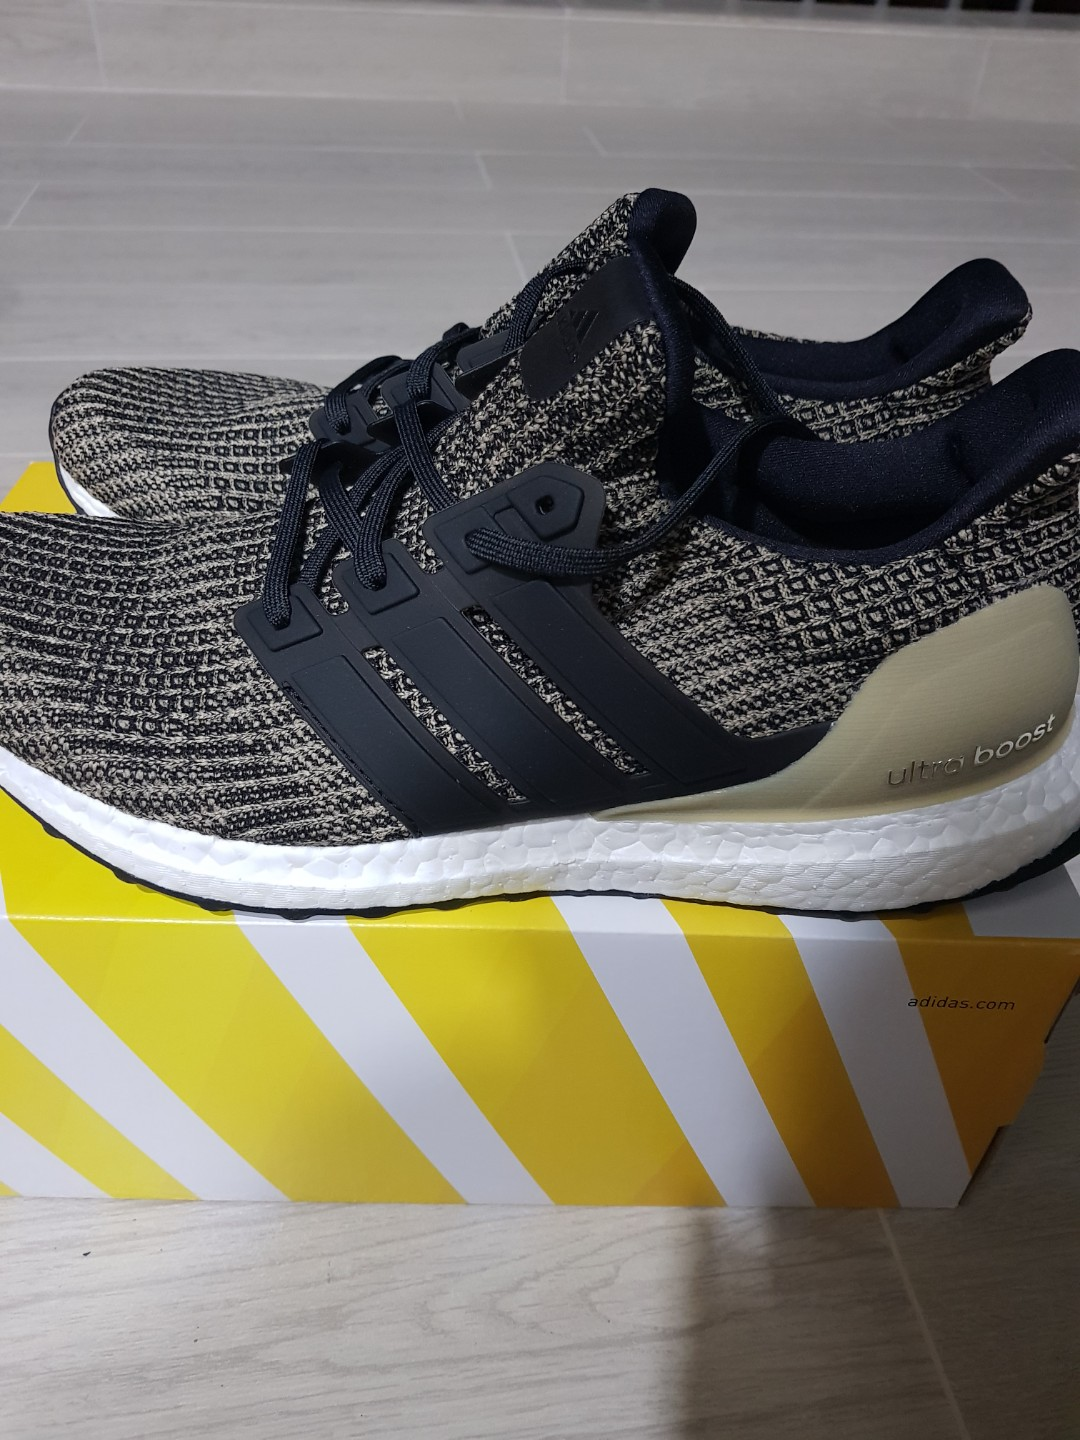 2b9a7e8e7 CUSTOMER ORDERS  Adidas Ultraboost 4.0 Black and Gold (Dark Mocha ...